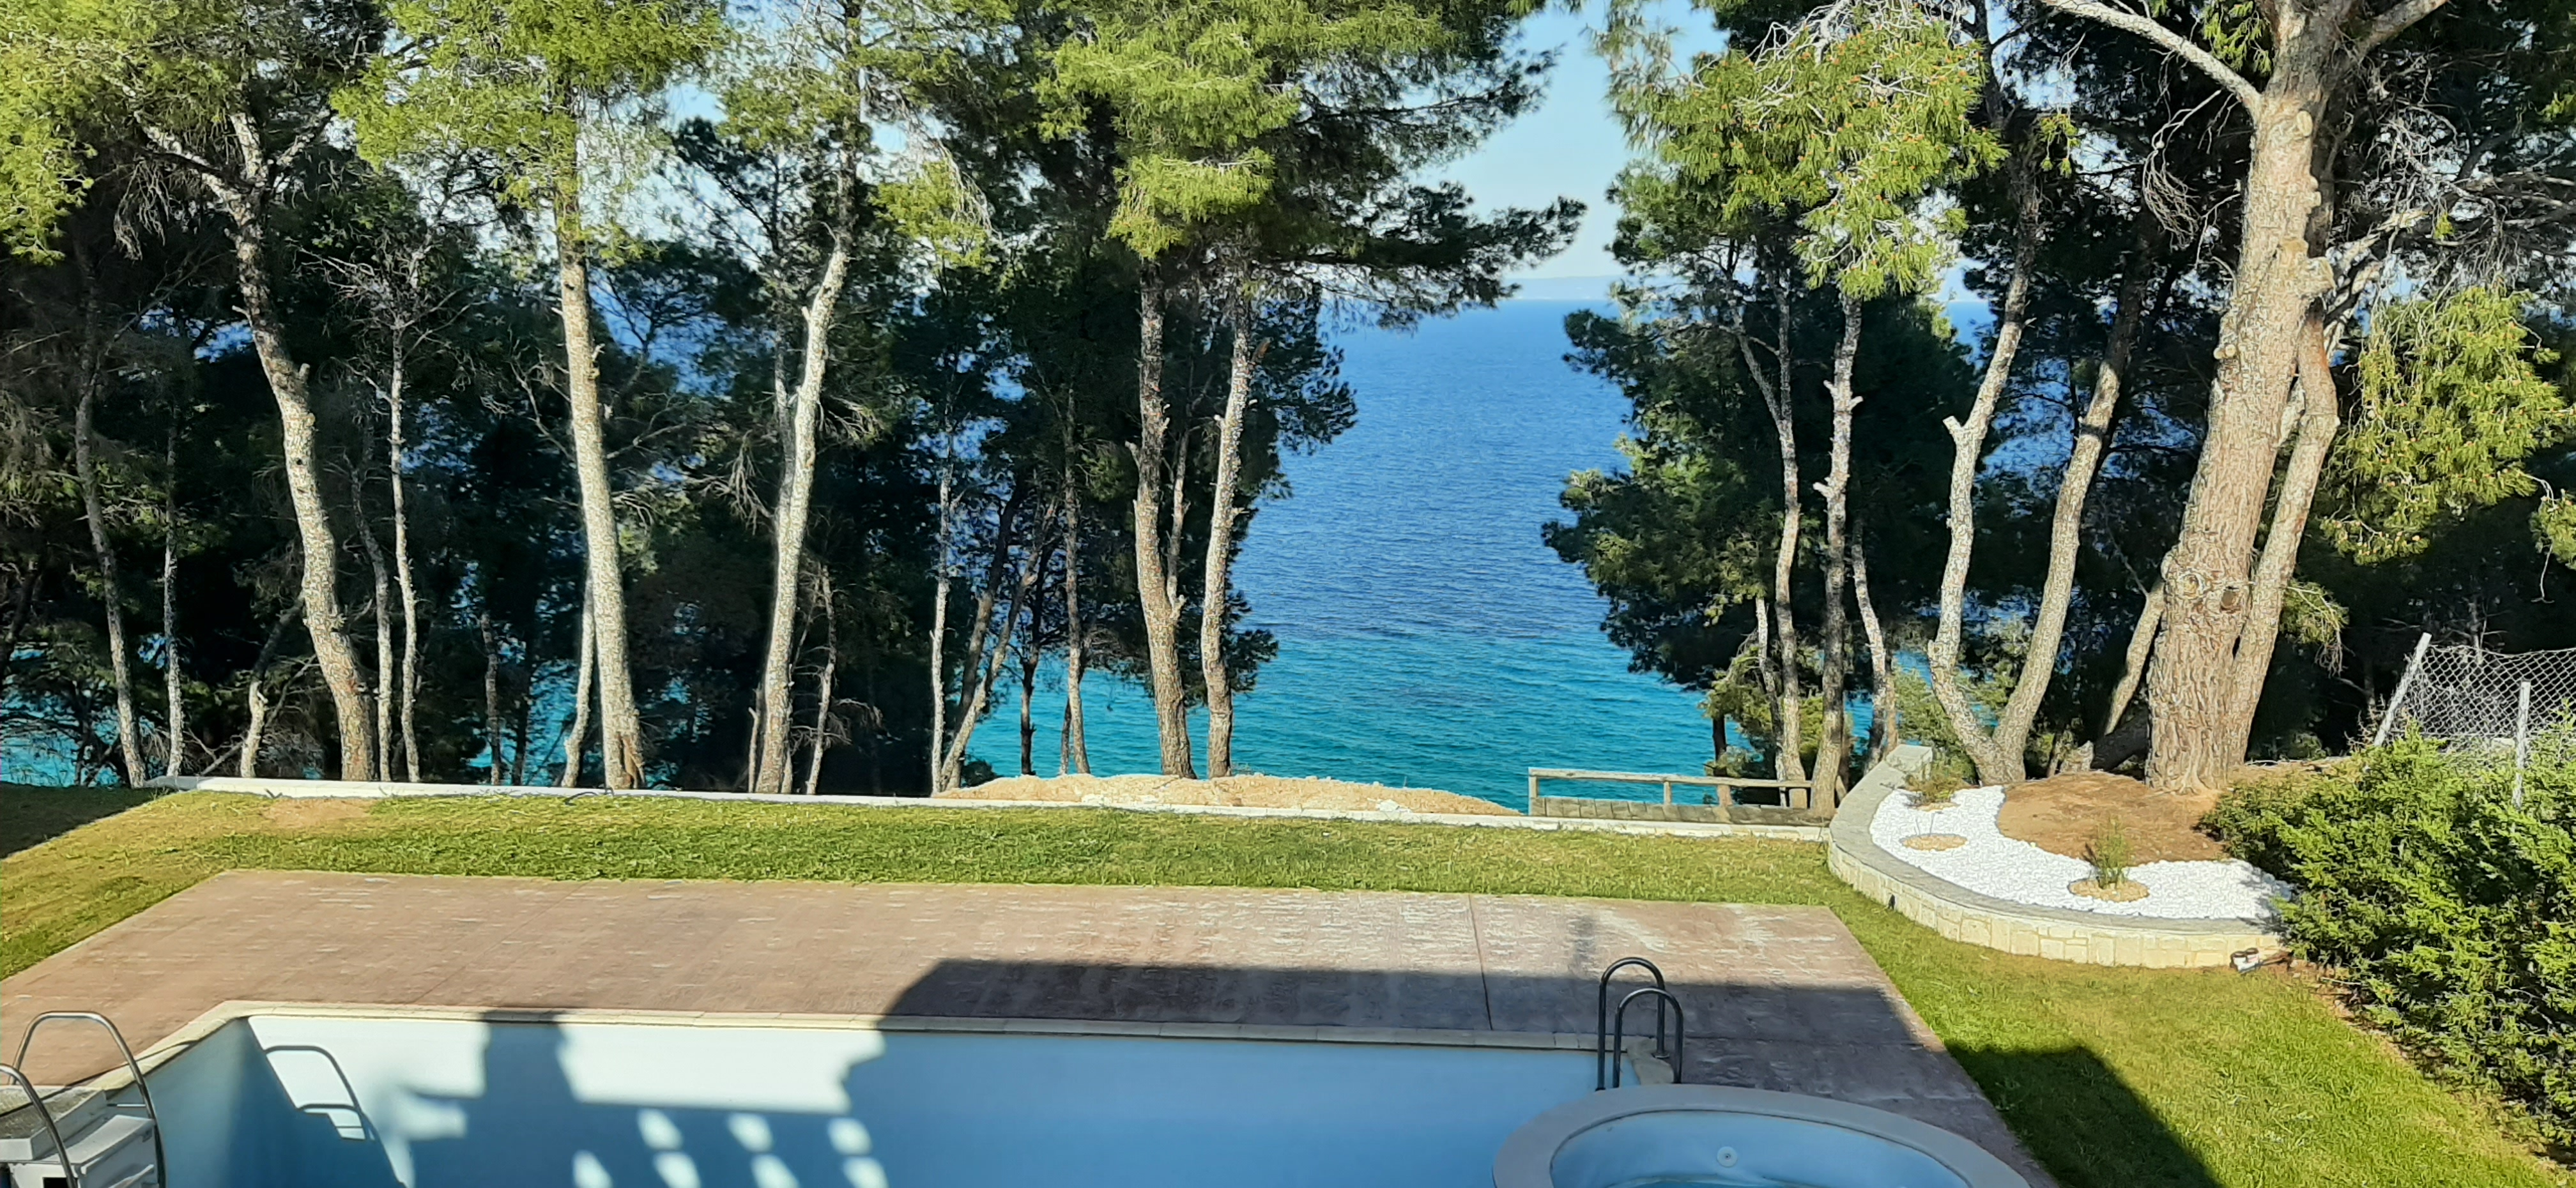 VILLA TEKTAMOS, Halkidiki-Kassandra, Greece - Exclusive villa with fully furnished private heated outdoor pools and a scenic location on the 1 line of the sea